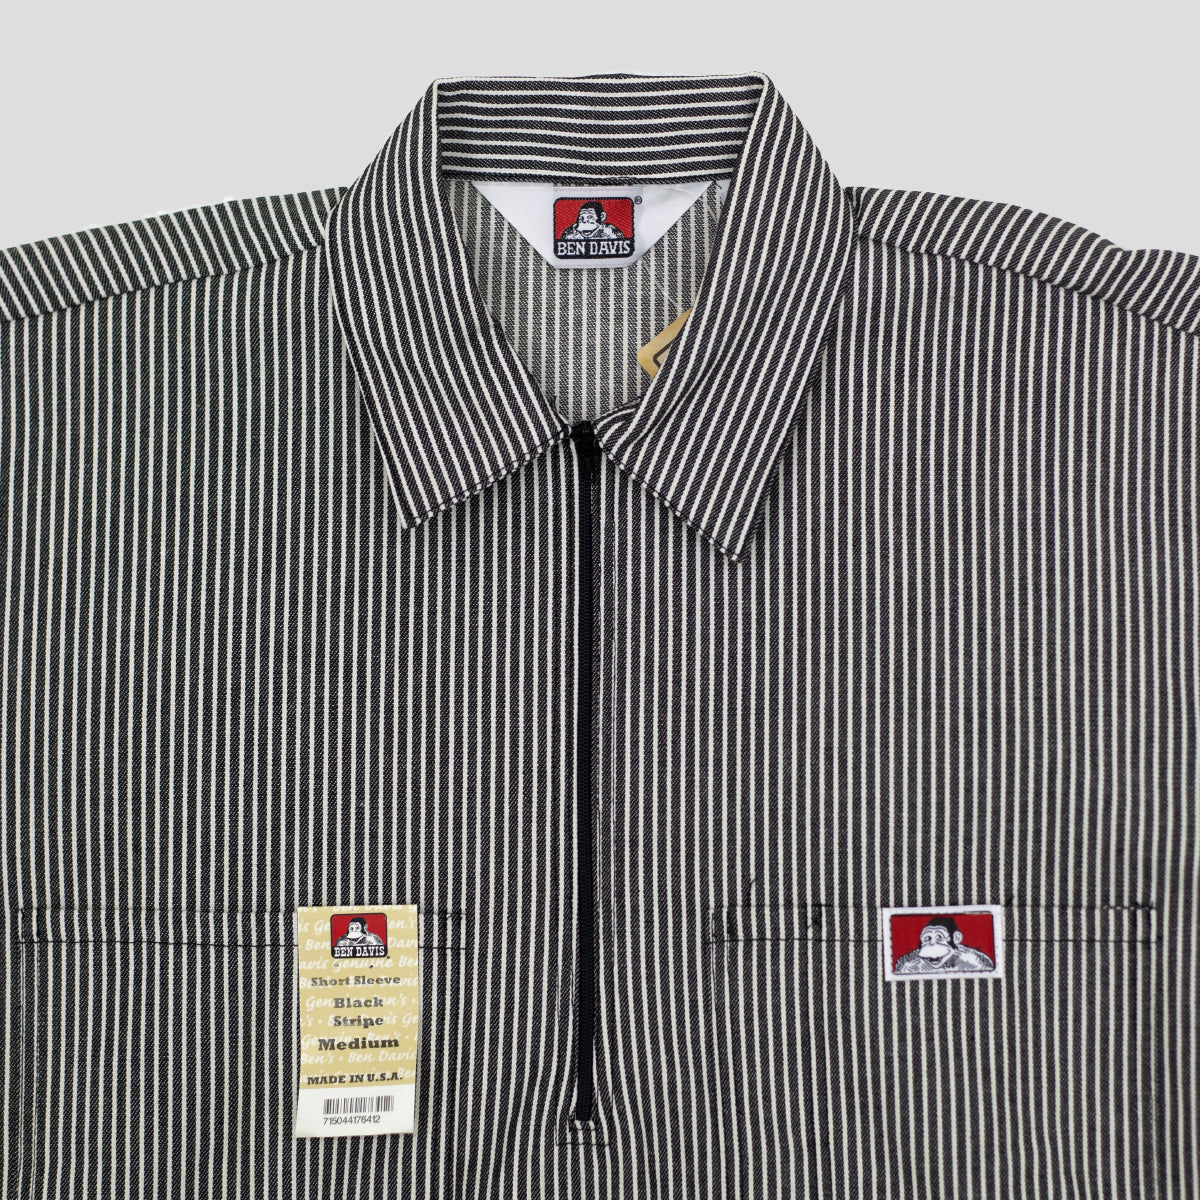 "BEN DAVIS ""STRIPE"" SHIRT S/S 1/4 ZIP BLACK"